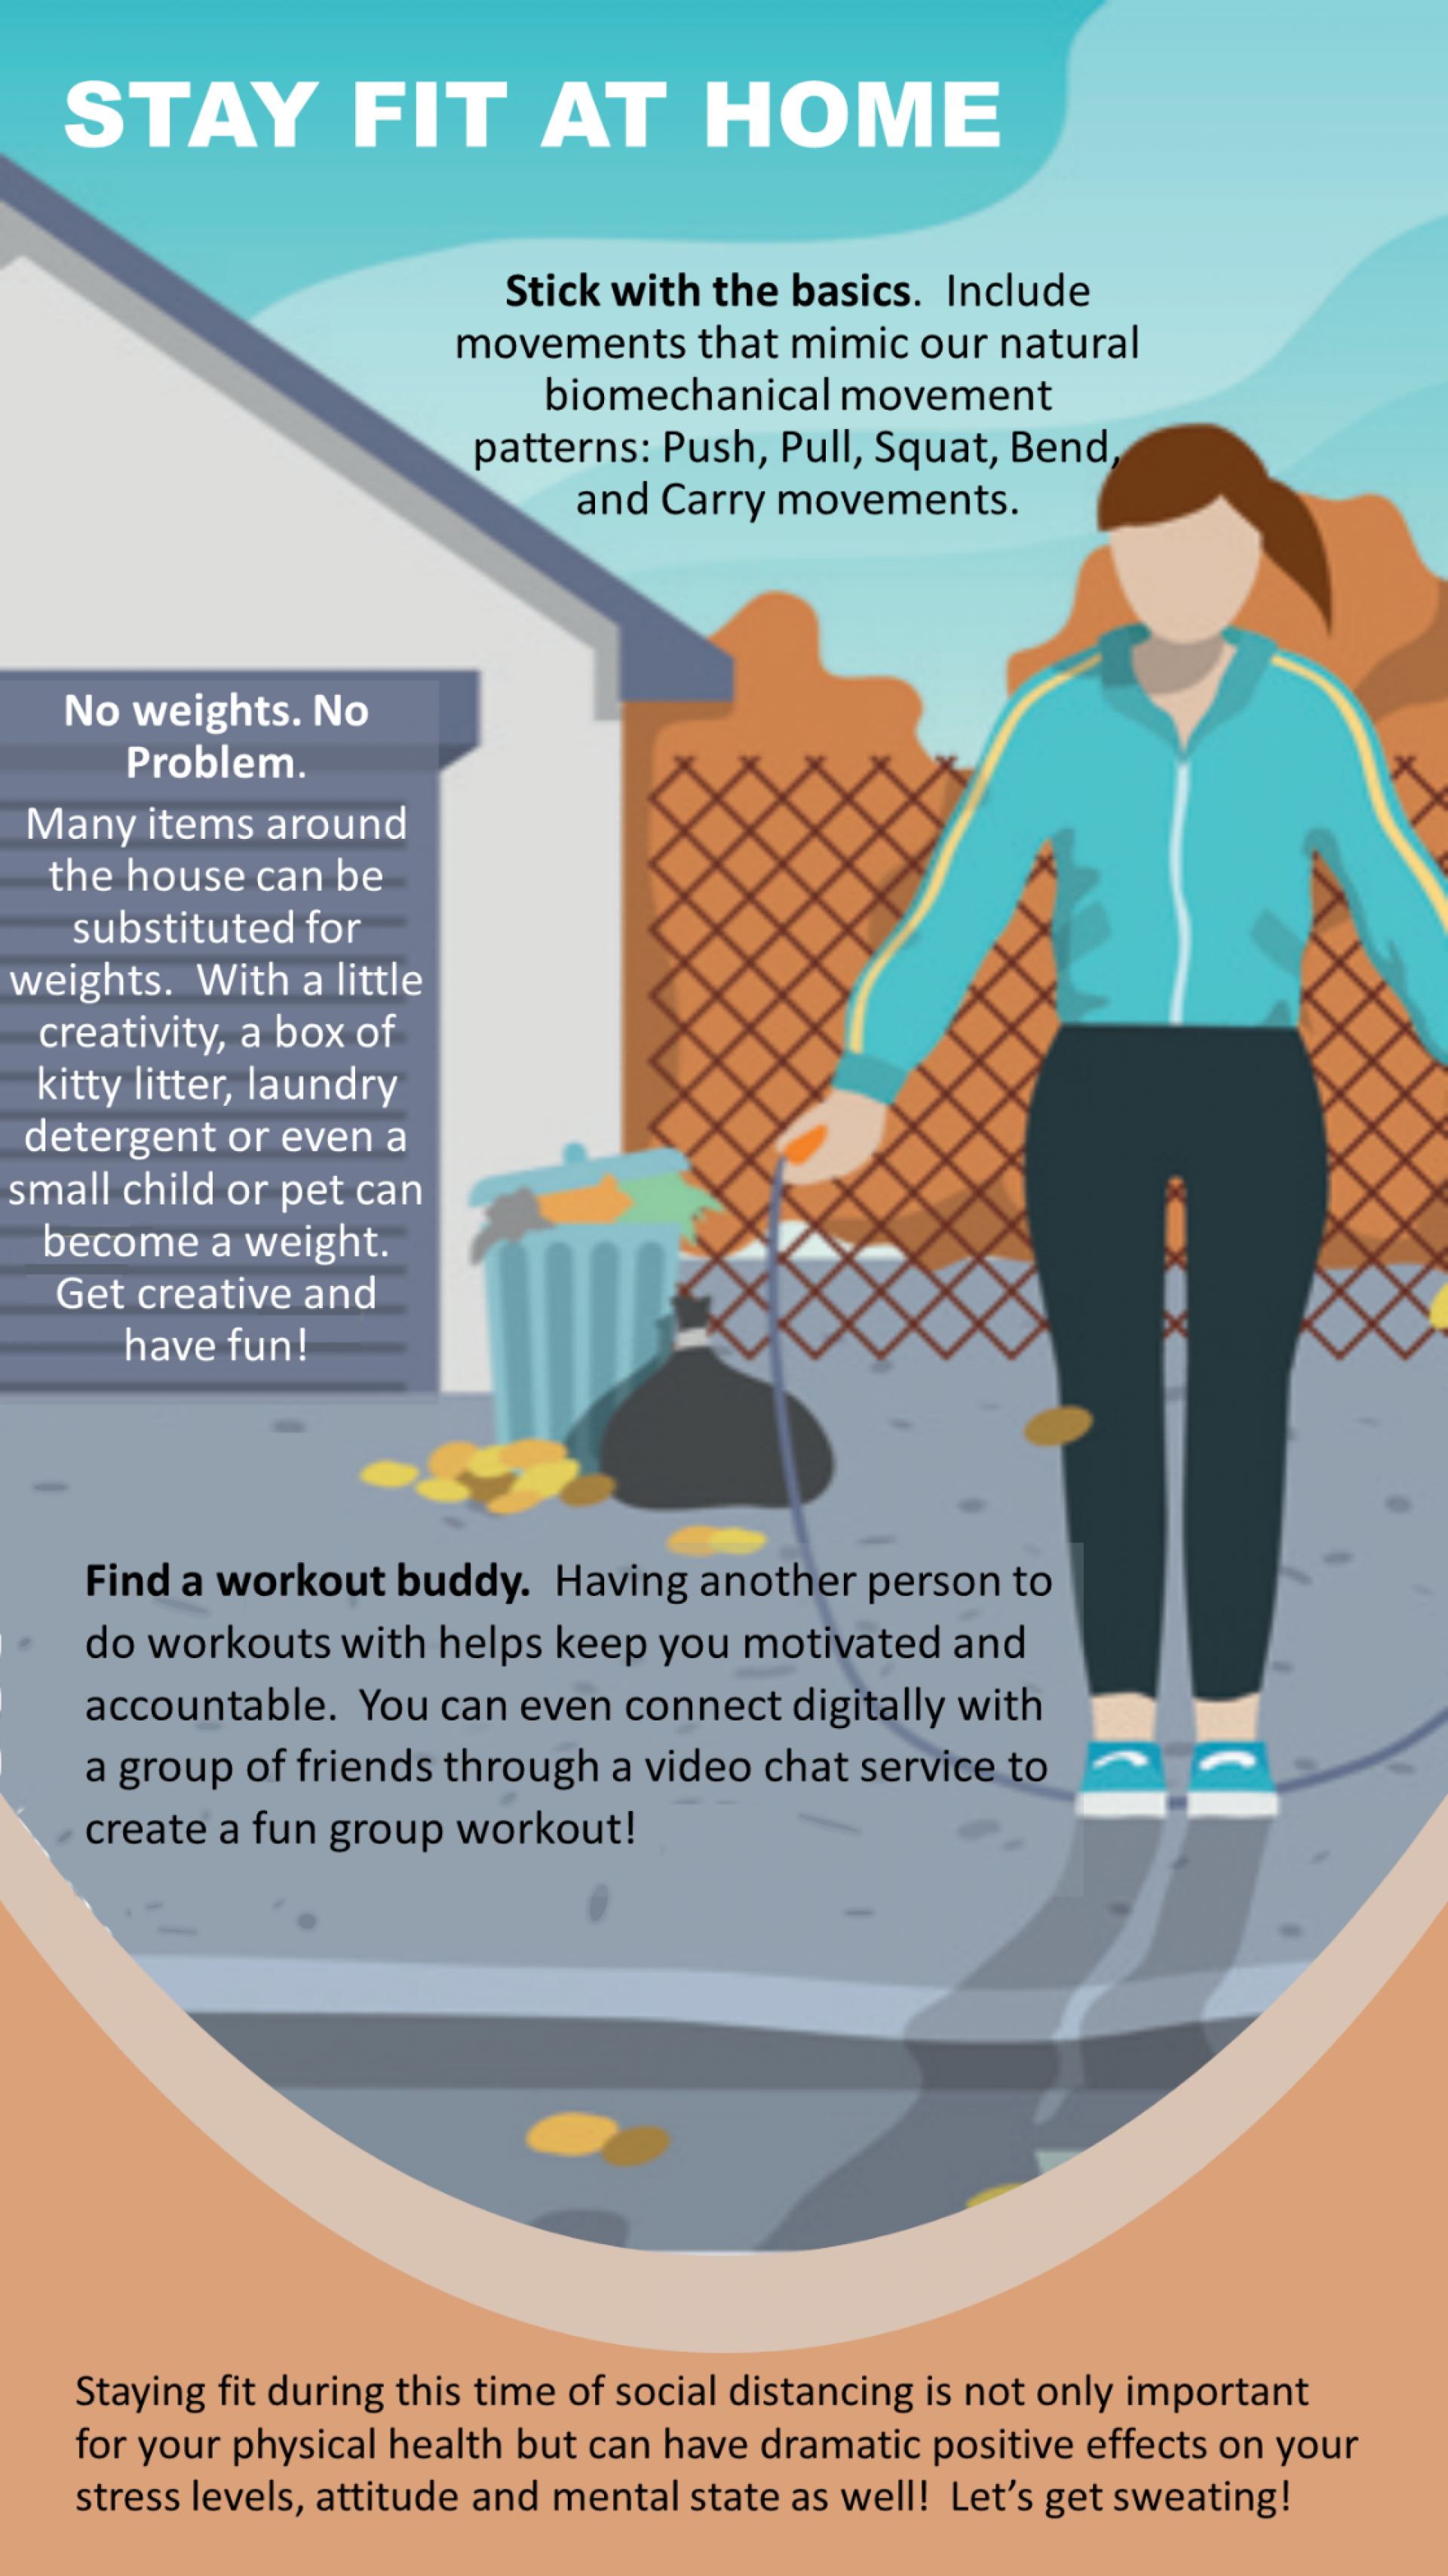 2 of 7 Lifelong Blog- FIT AT HOME infographic